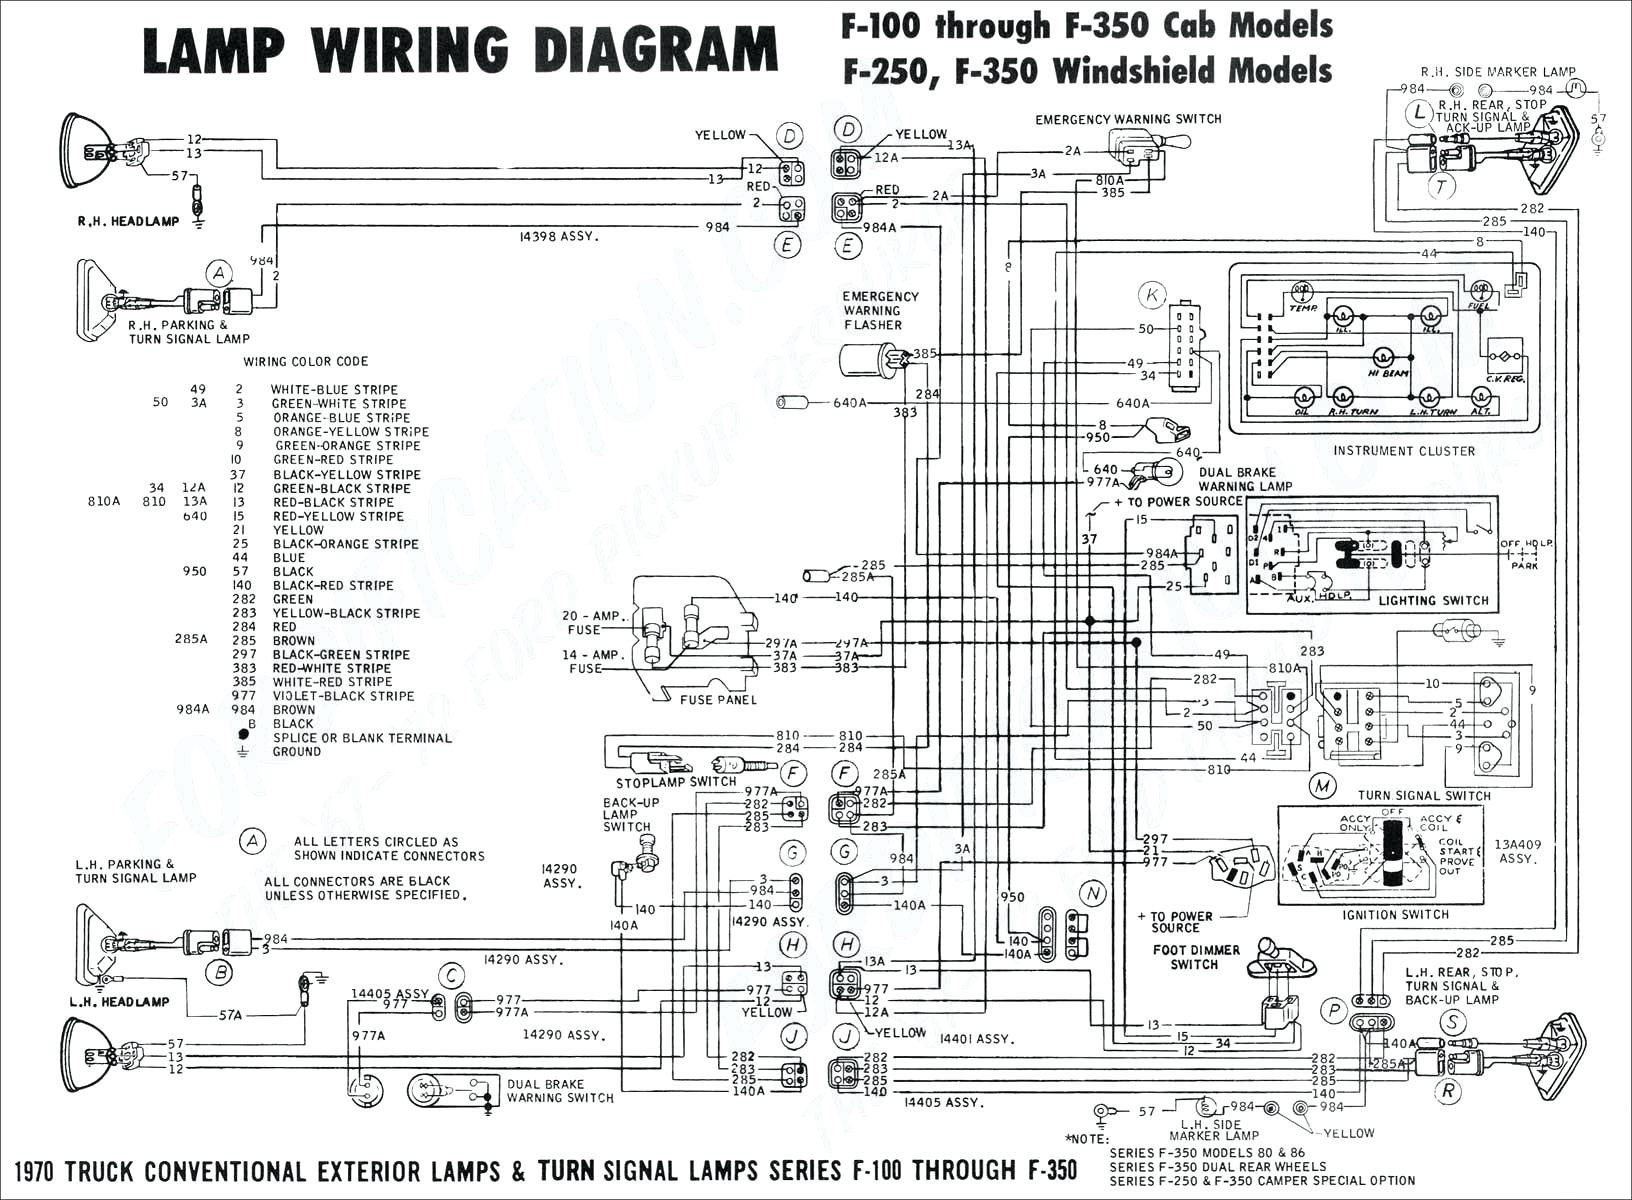 Diagram 88 F150 Wiring Diagram Full Version Hd Quality Wiring Diagram Diagramspier Campionatiscipc2020 It